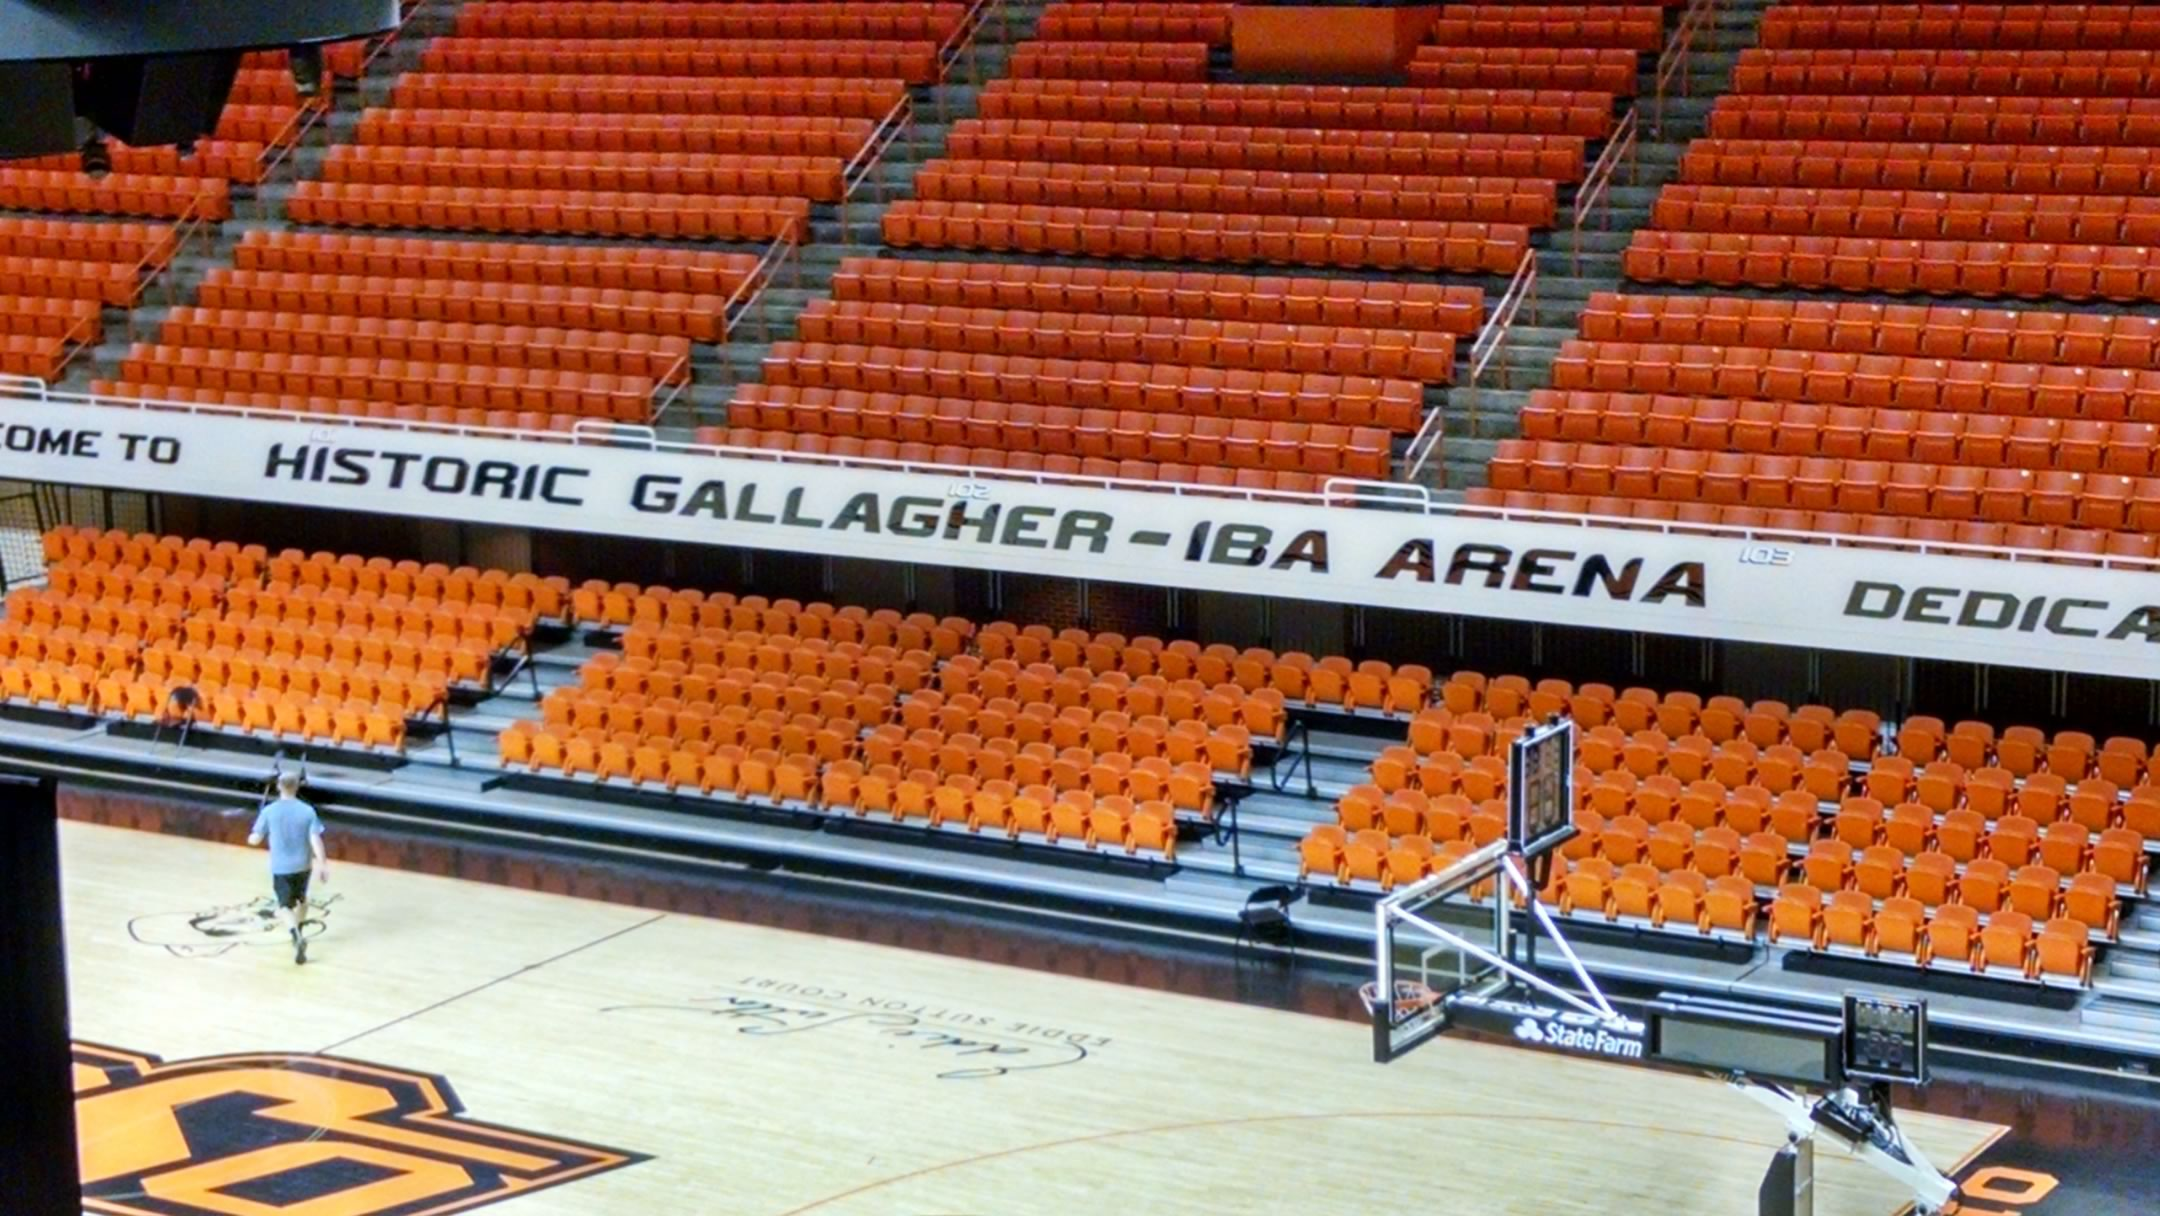 Gallagher Iba Arena Section 110 Rateyourseats Com